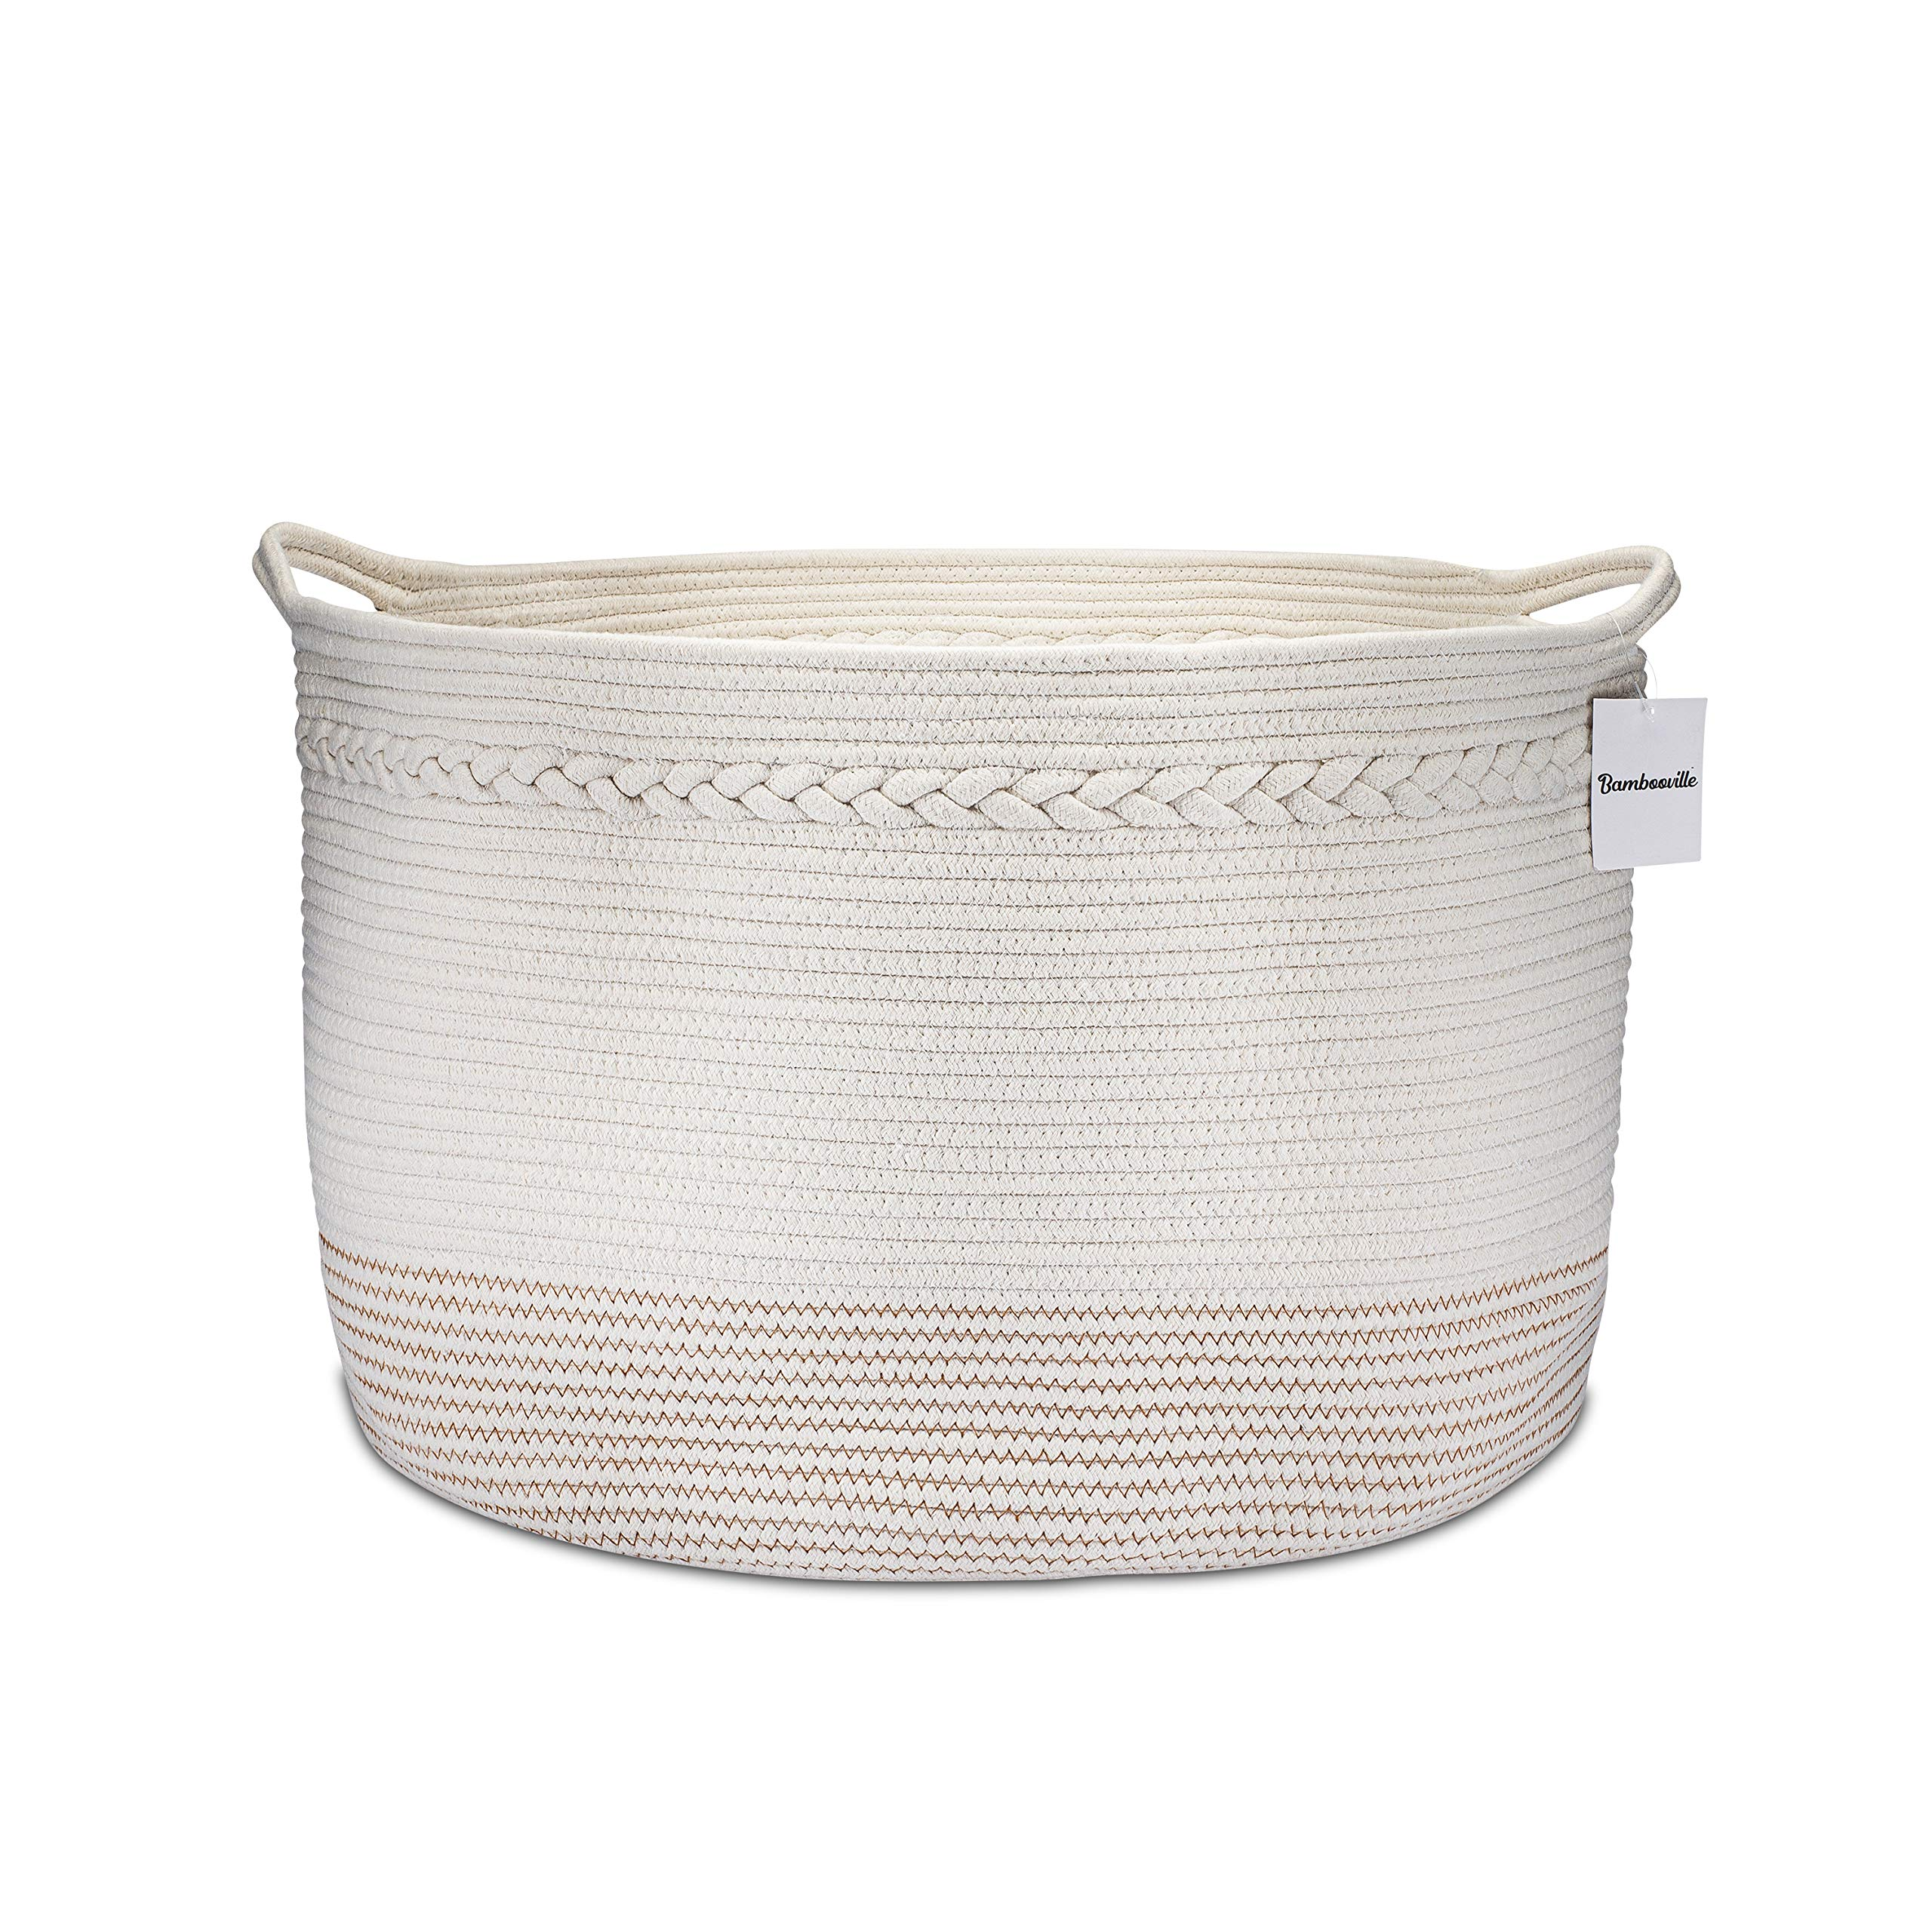 Bambooville Cotton Rope Basket Extra Large XXXL 21.8''x 13.8'' for Toy Storage Blanket Basket Toy Bin and Baby Laundry Basket -Brown Thread by Bambooville Rope Basket